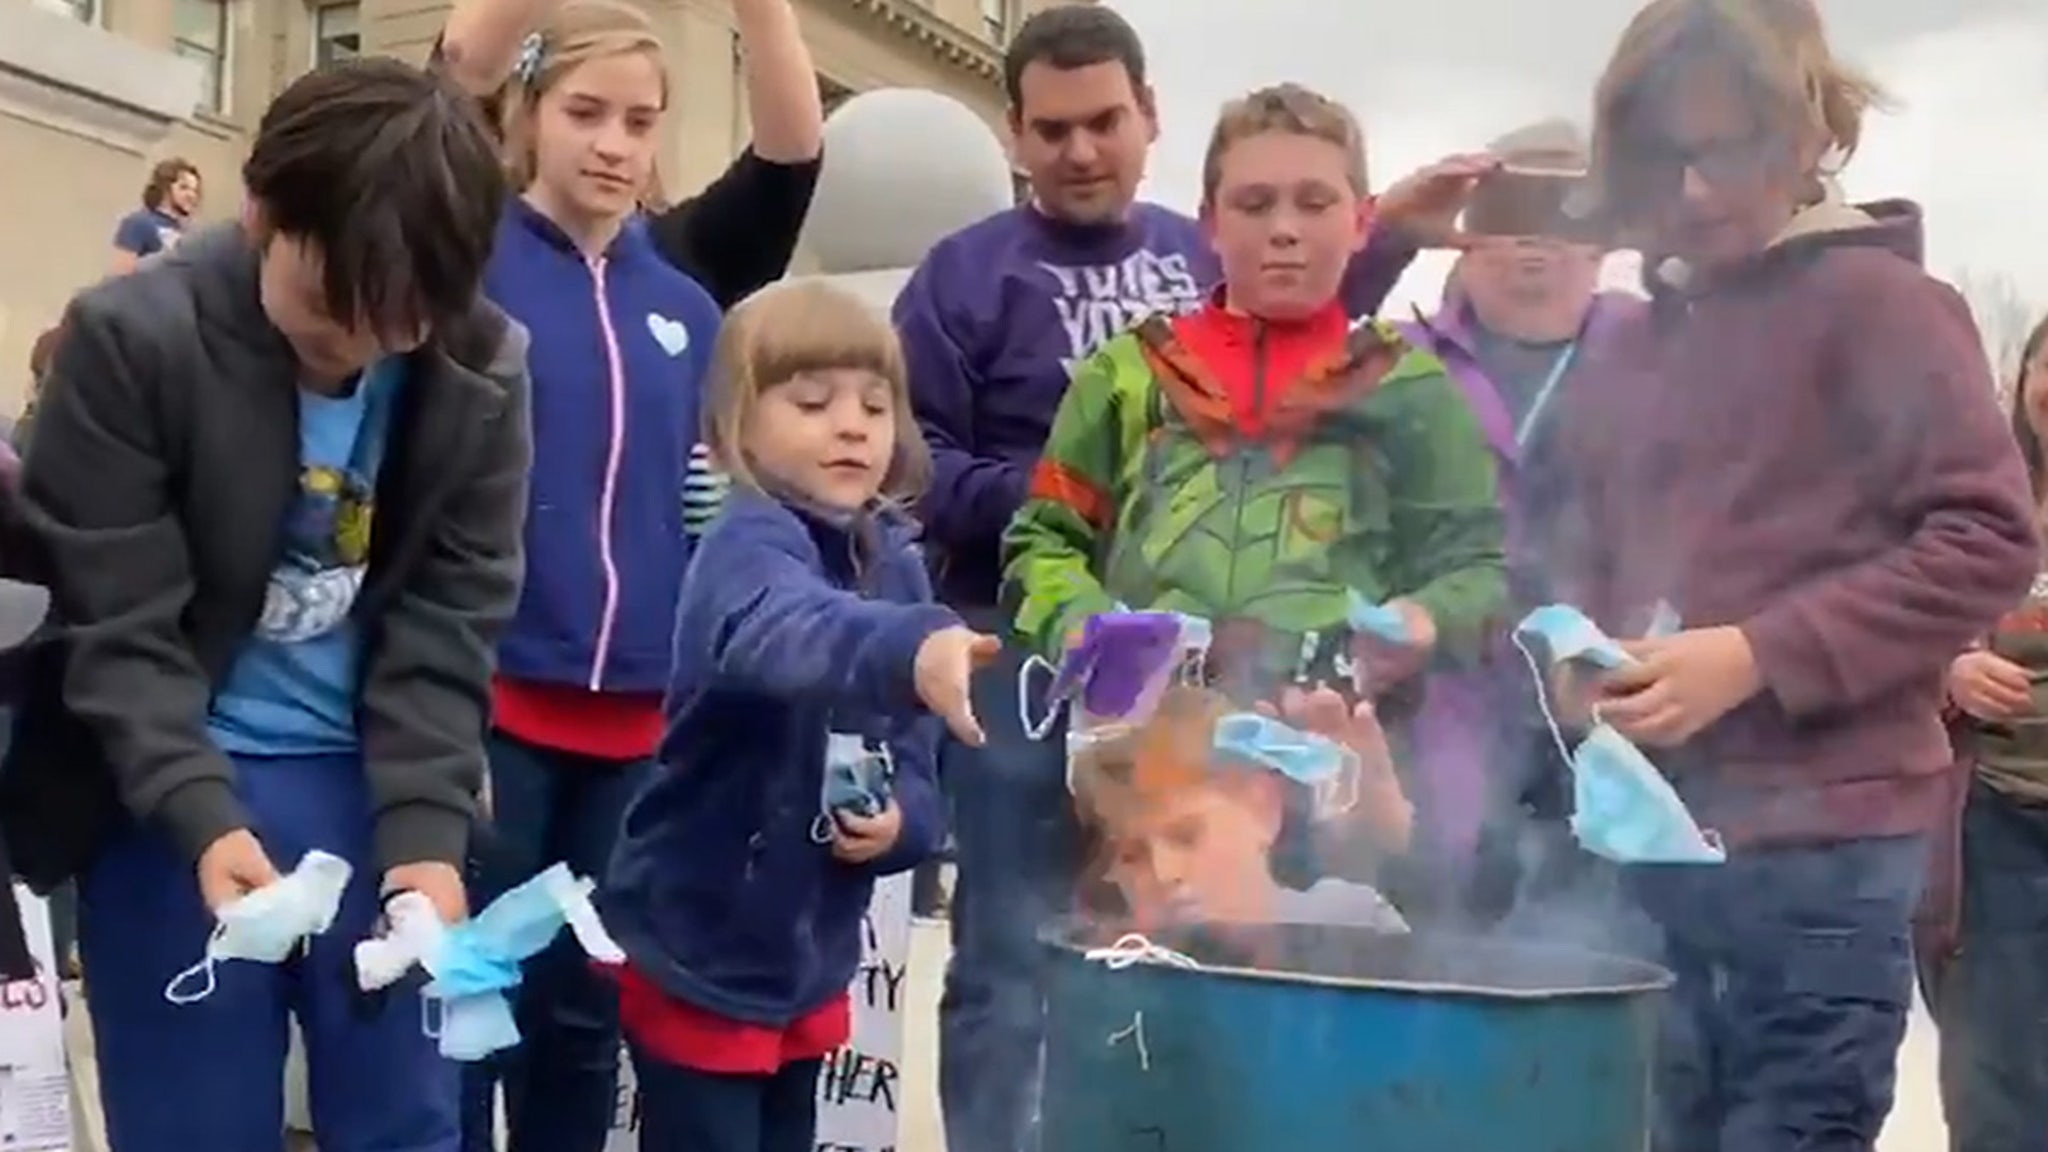 Idaho's #BurnTheMask Rally Sees Kids Tossing 'Em into Flames ... As State Moves Toward Banning Mask Mandates